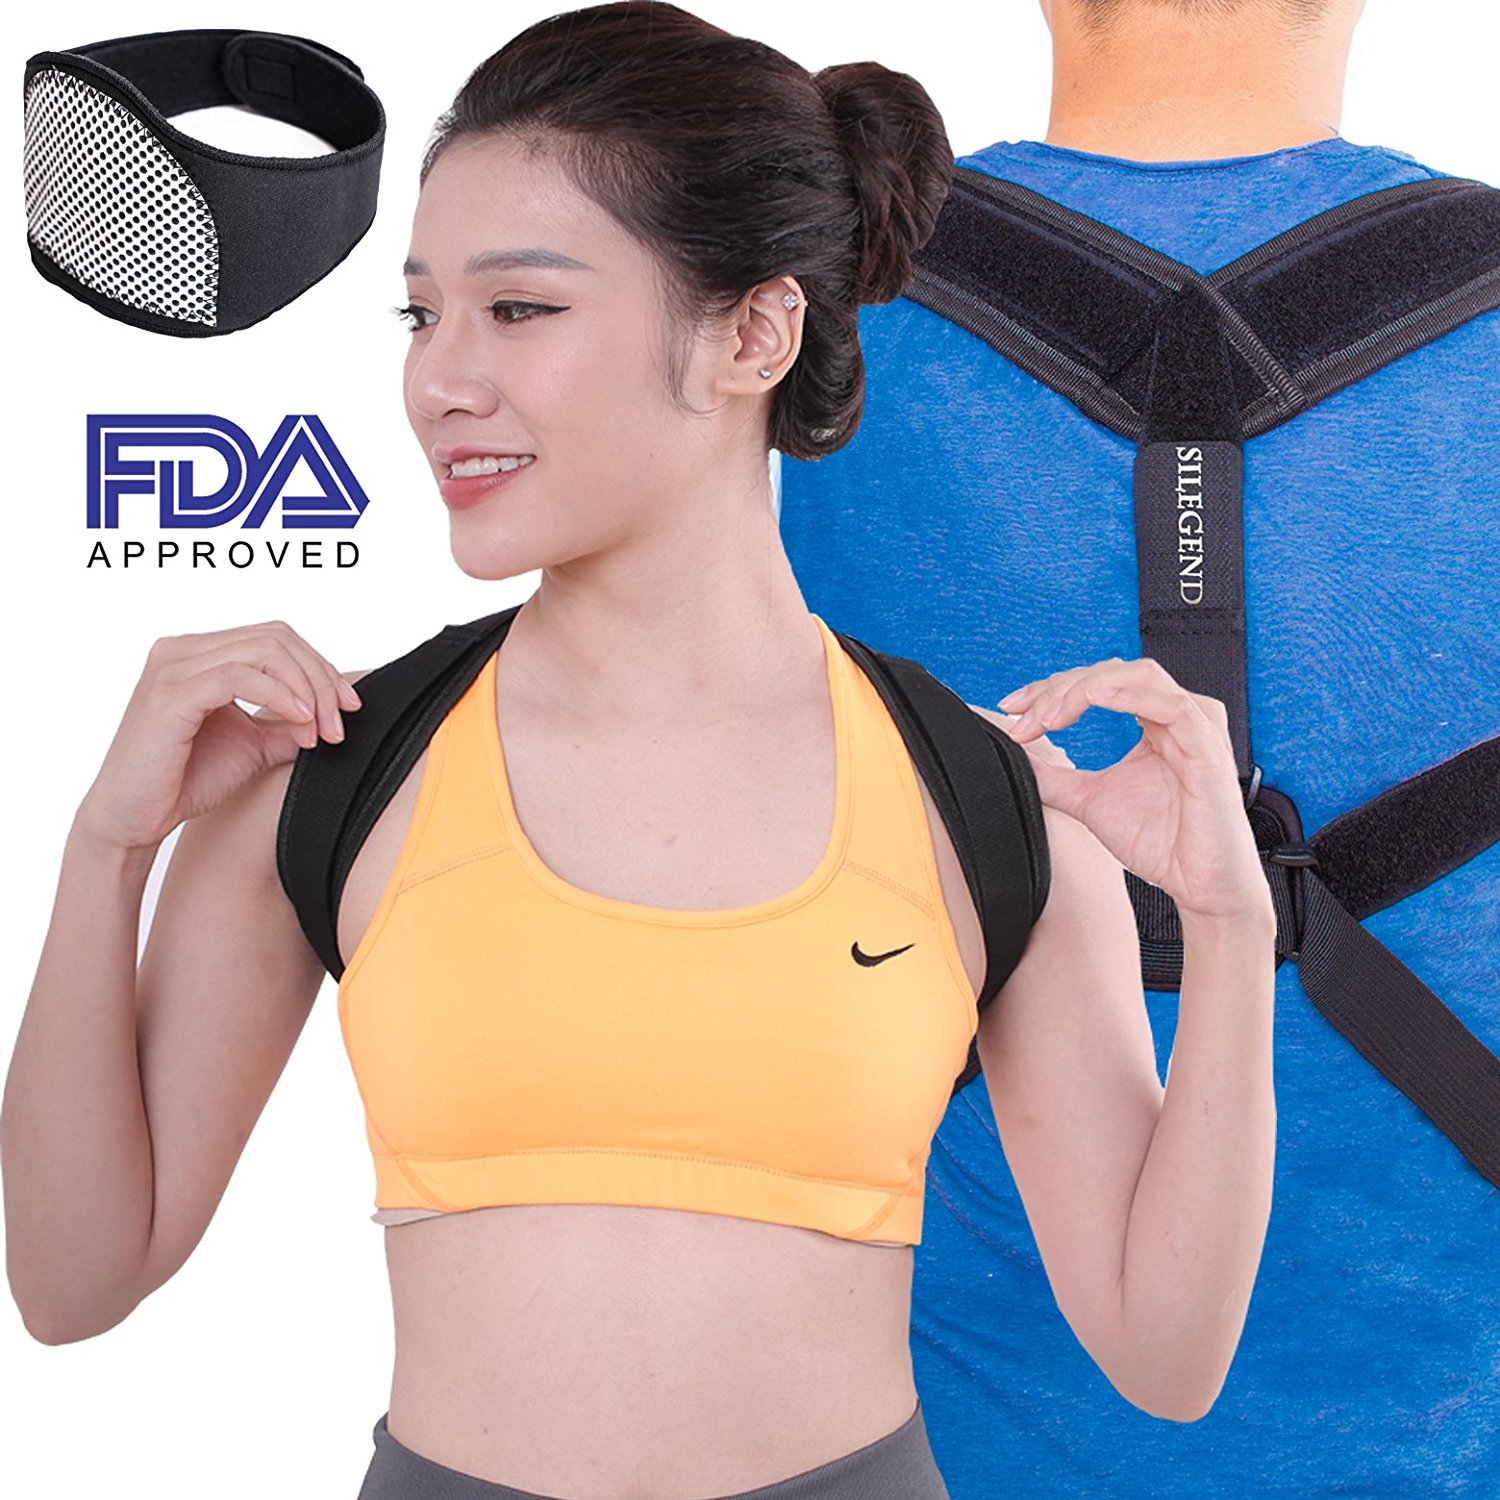 3e55fbe294 Get Quotations · Posture Corrector For Women And Men - Free Neck Brace  Premium Quality